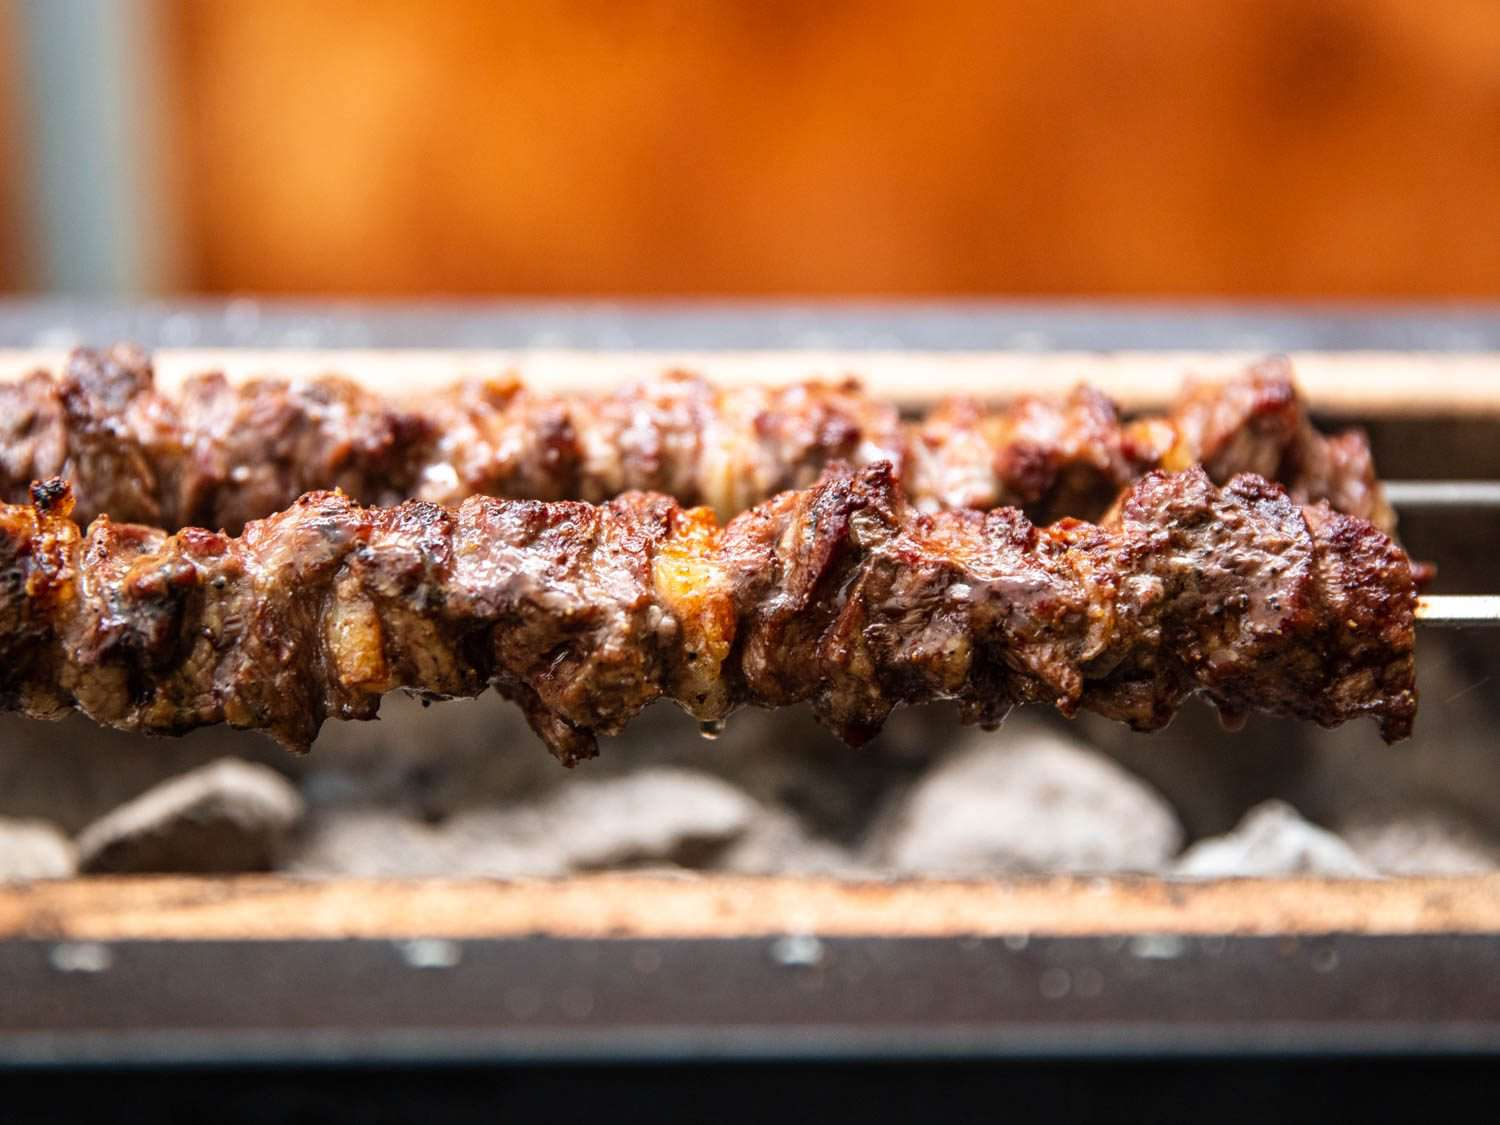 Closeup of lamb skewers grilling over coals on a Japanese konro grill